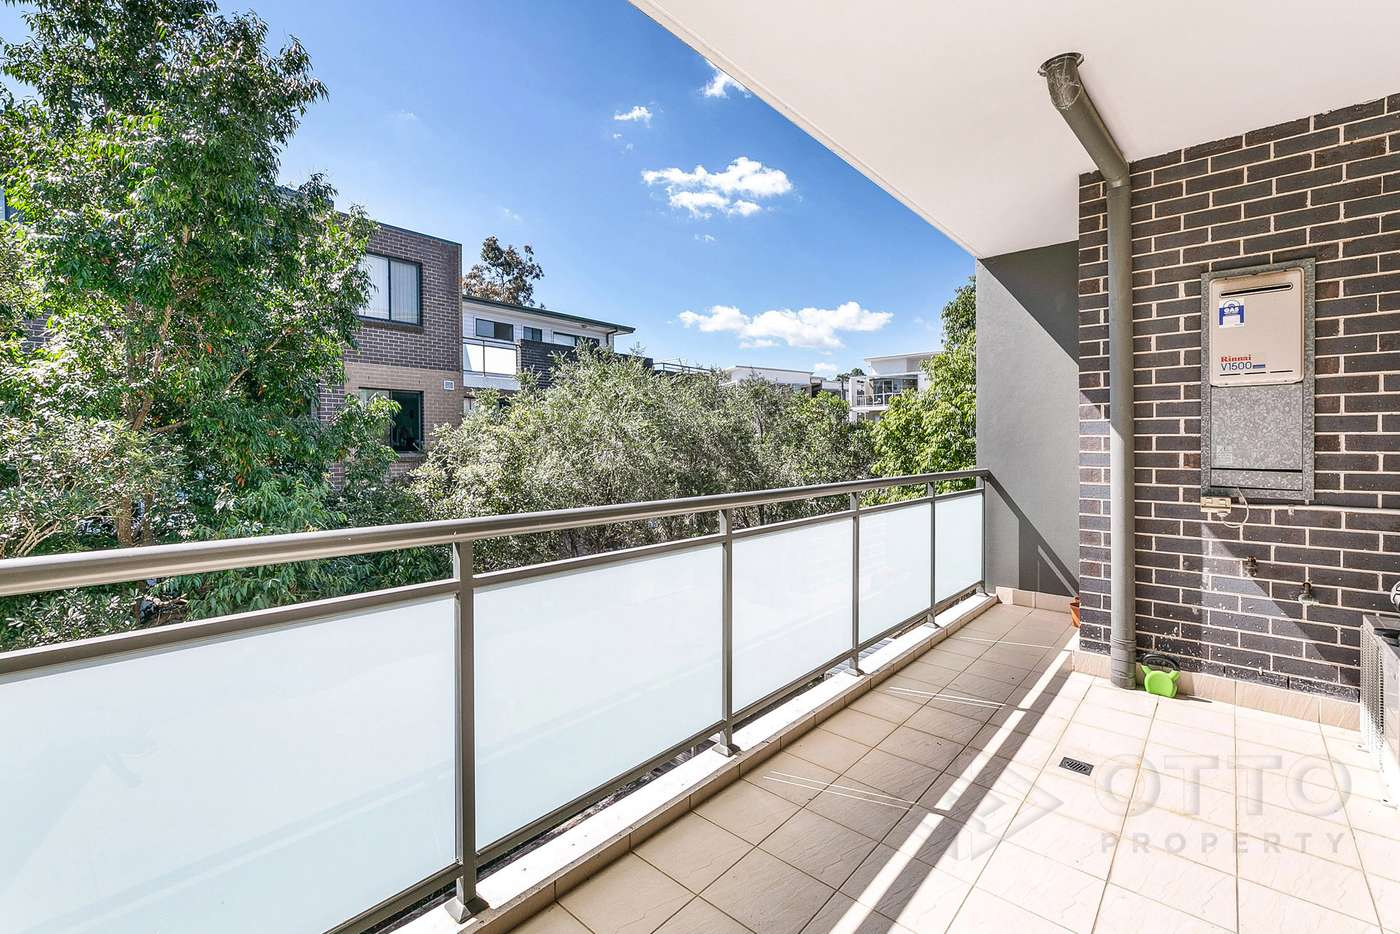 Sixth view of Homely apartment listing, 6/217-219 William Street, Granville NSW 2142